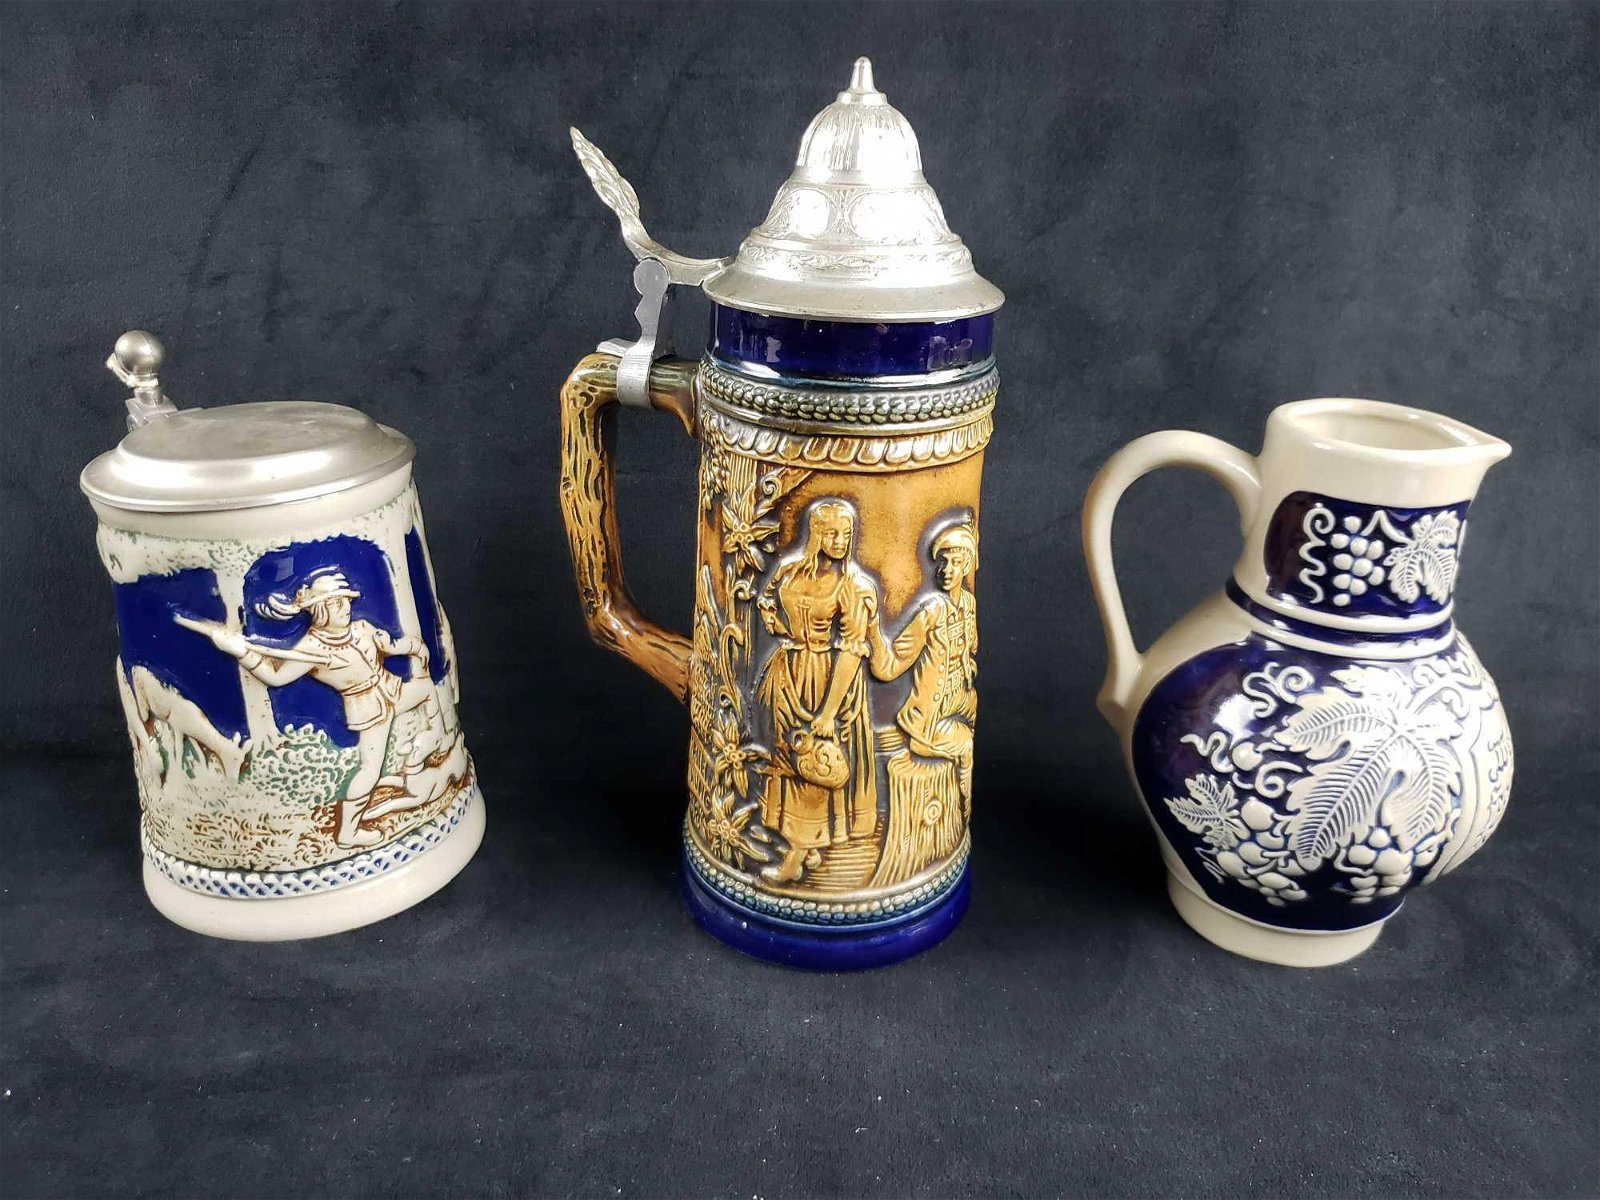 Set of 2 Lidded Beer Steins and 1 Pitcher